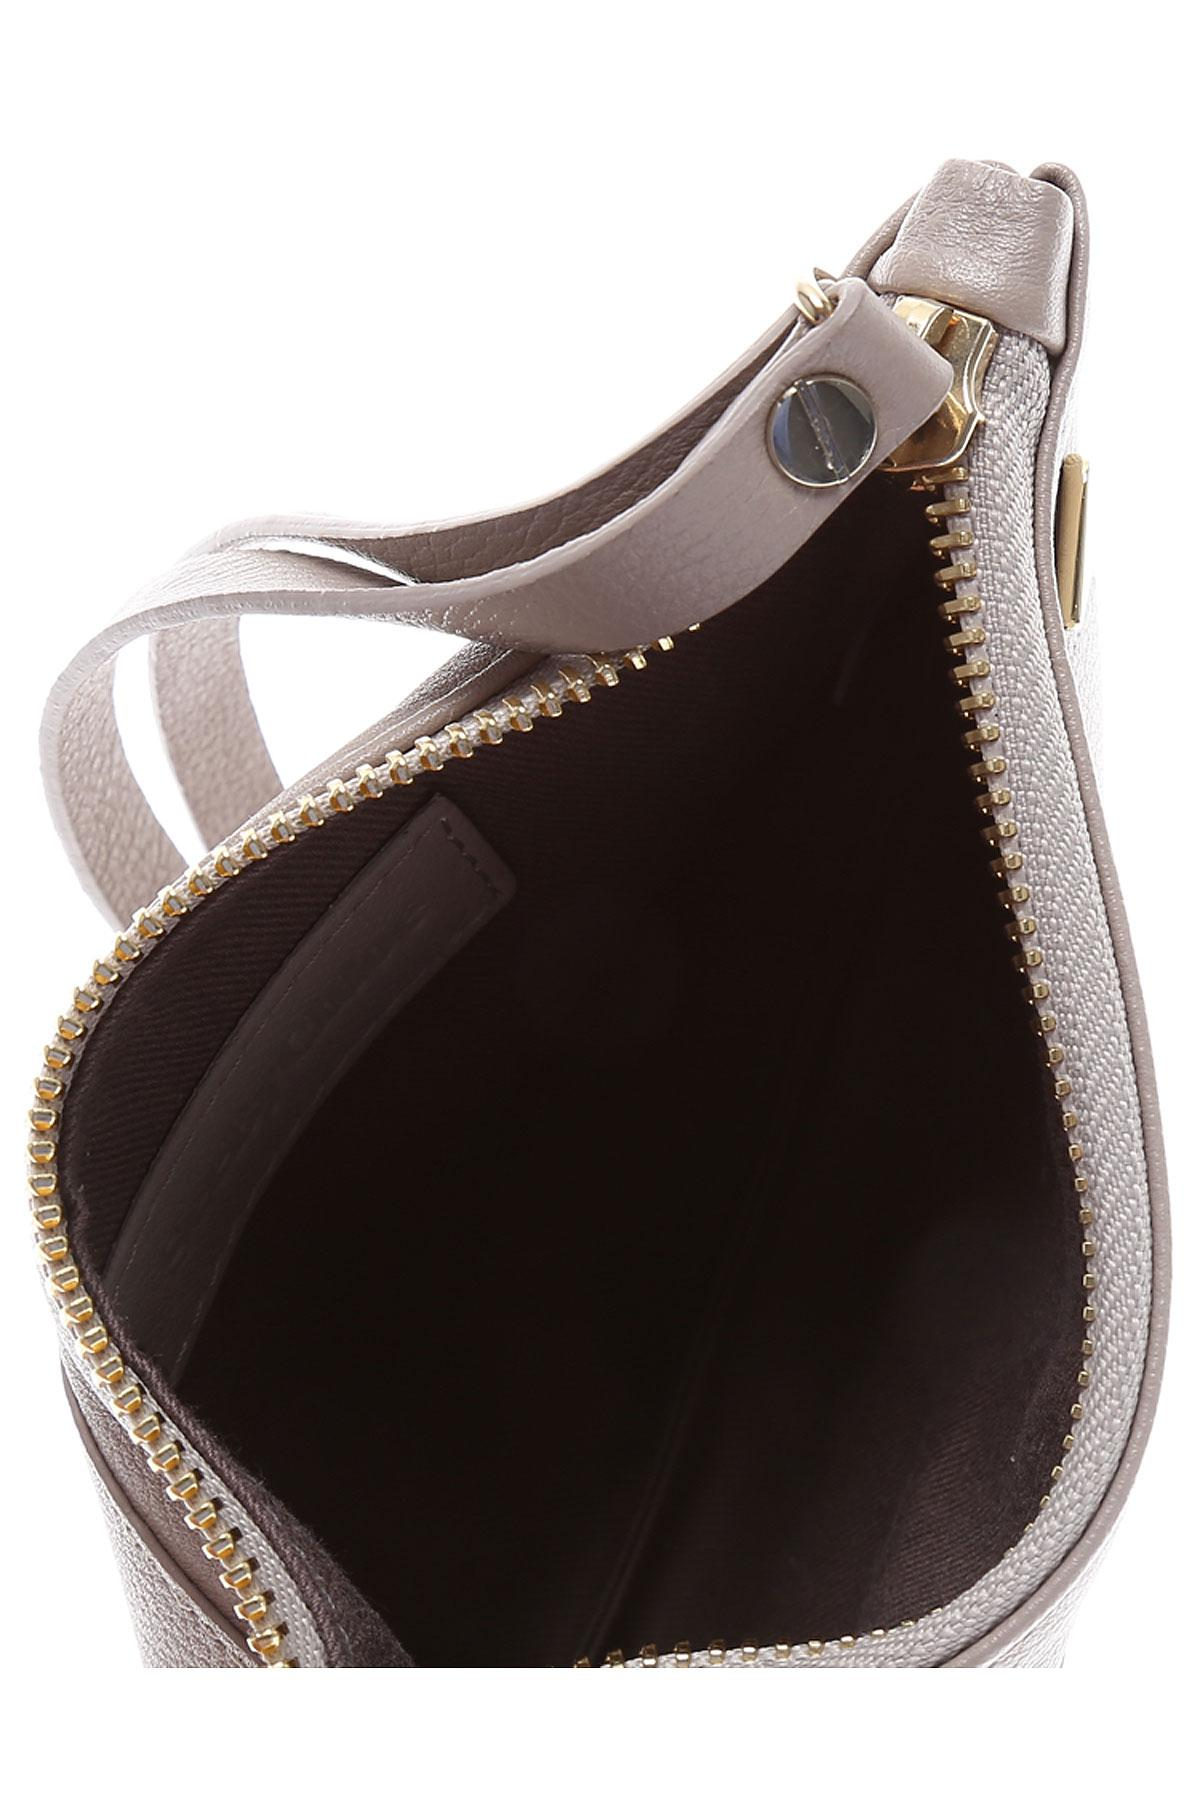 Lyst - Chloé Women  s Pouch On Sale In Outlet in Gray ef90ac6a9